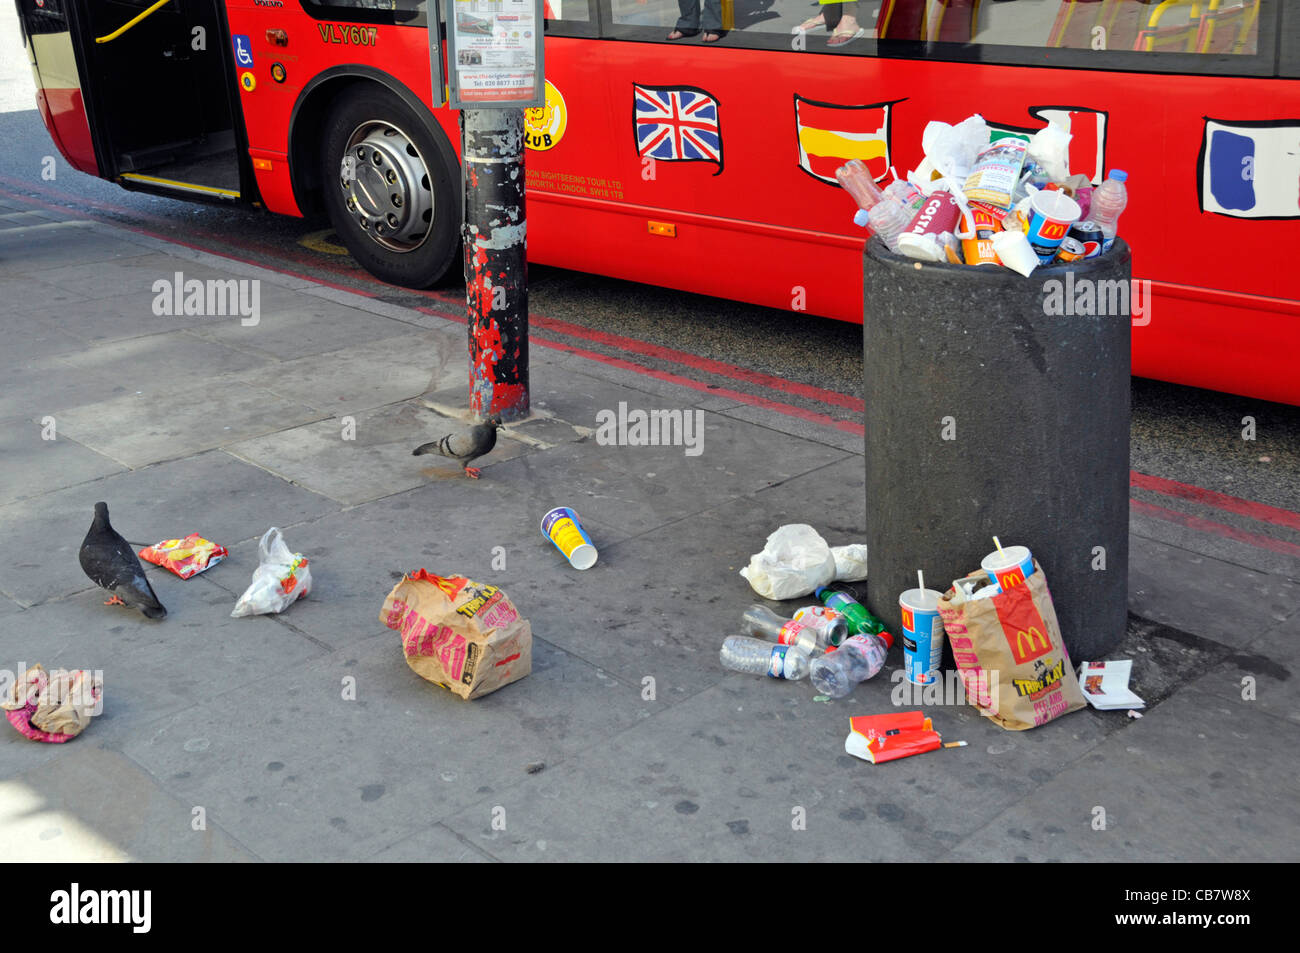 Waste management required to littering scene at street refuse bin full of rubbish garbage litter & trash spilling - Stock Image